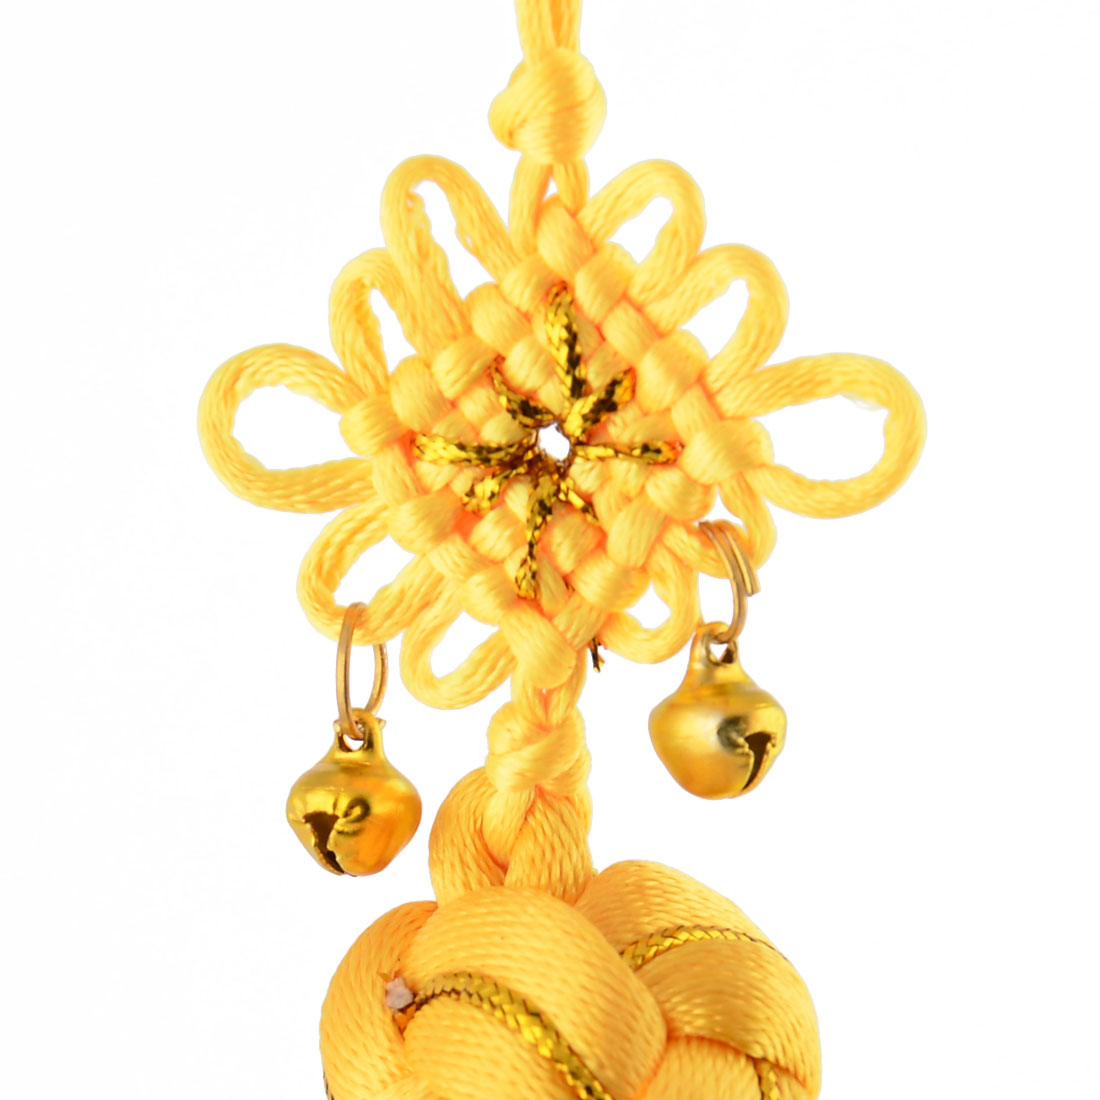 Living Room Polyester Handmade Single Knot Tassel Crafting Chinese Knot Yellow - image 1 de 3